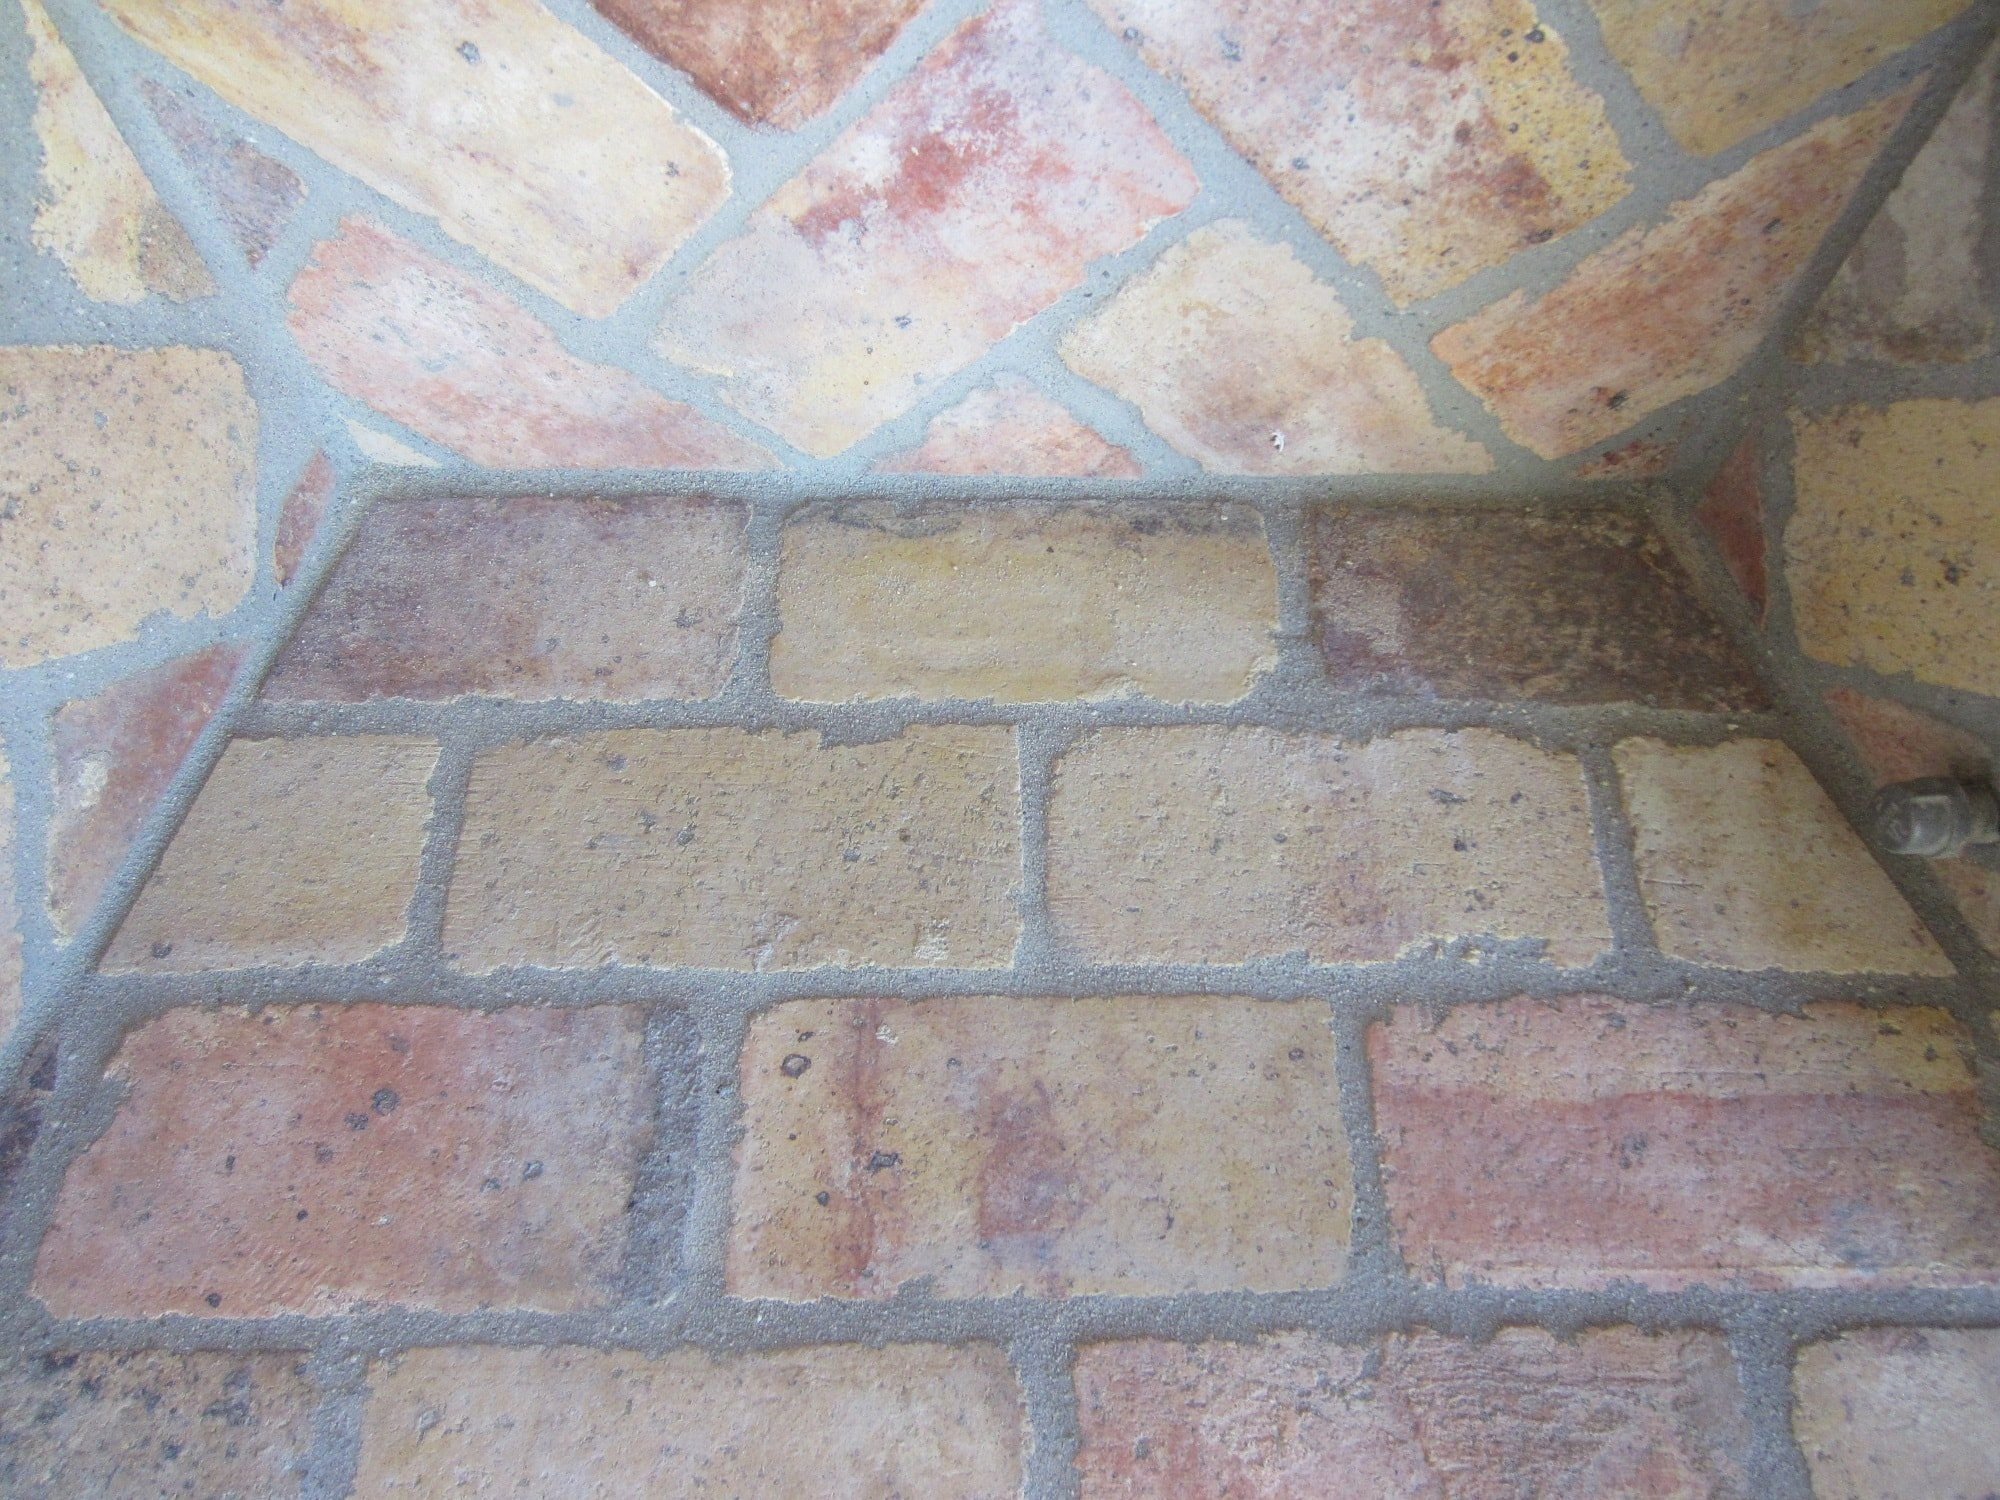 Close-up photo of the top of the interior of a Reclaimed Antique Firebrick chimney.